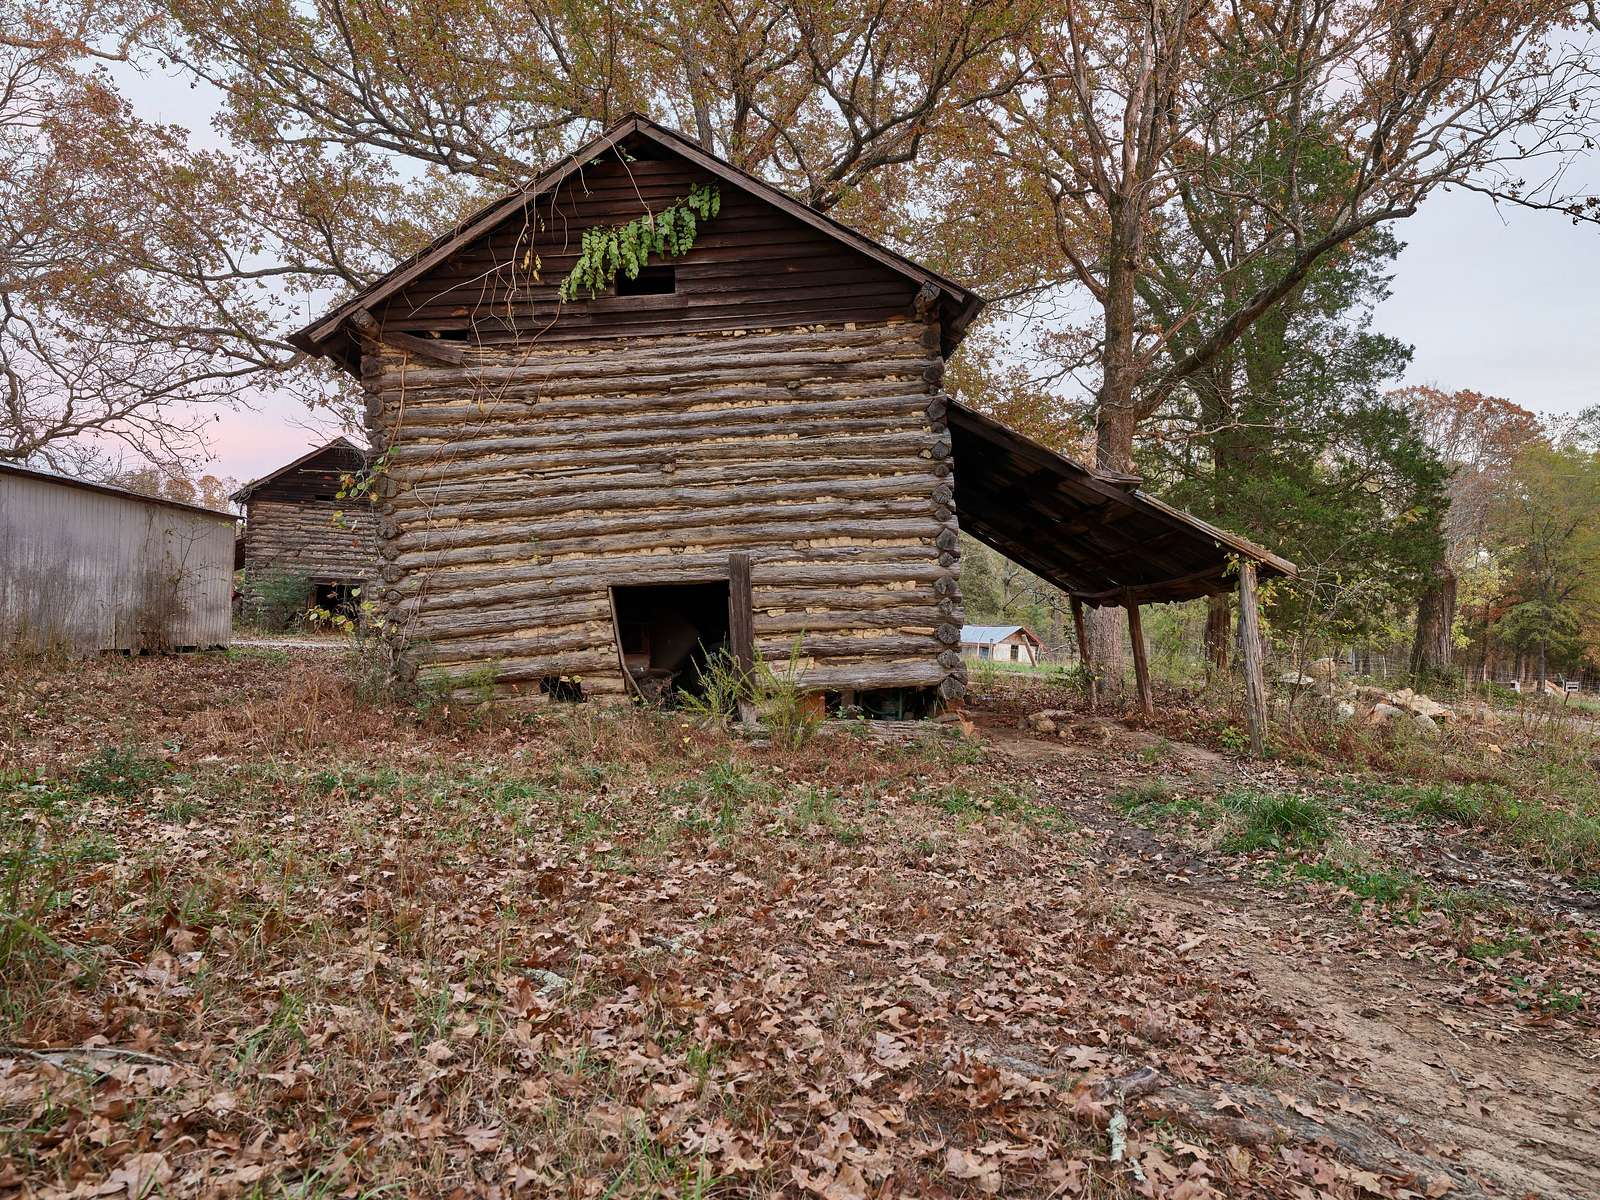 One of several tobacco barns at Prodigal Farm, near Durham in Rougemont, North Carolina